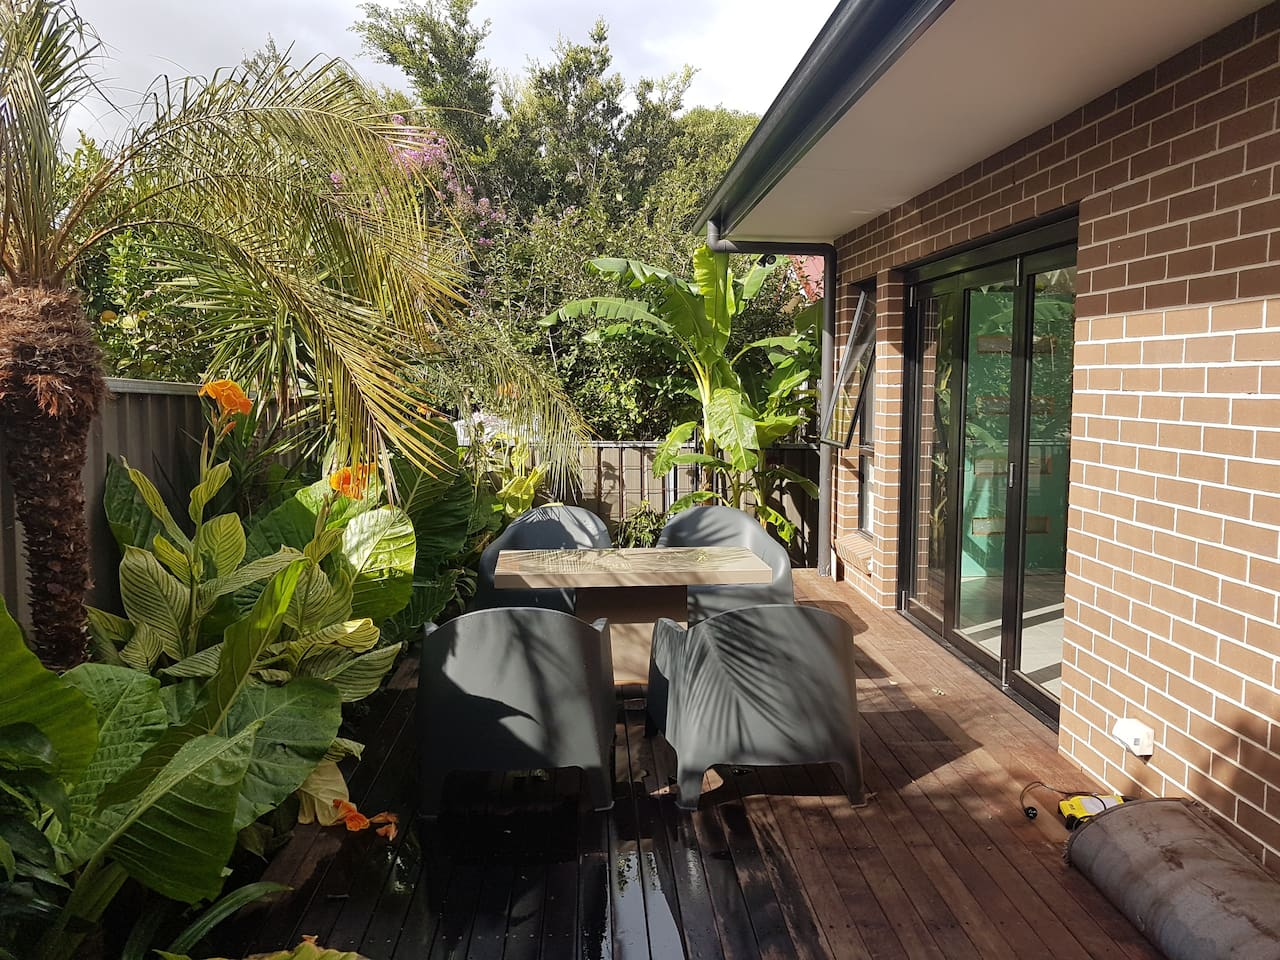 Room in resort style serviced apartment - your own tropical oasis. Make your stay feel like a holiday! Pool available for guest use. Full kitchen and laundryfacilities. Breakfast provided. Linen provided. Artwork to amuse (see the amazing fridge!)